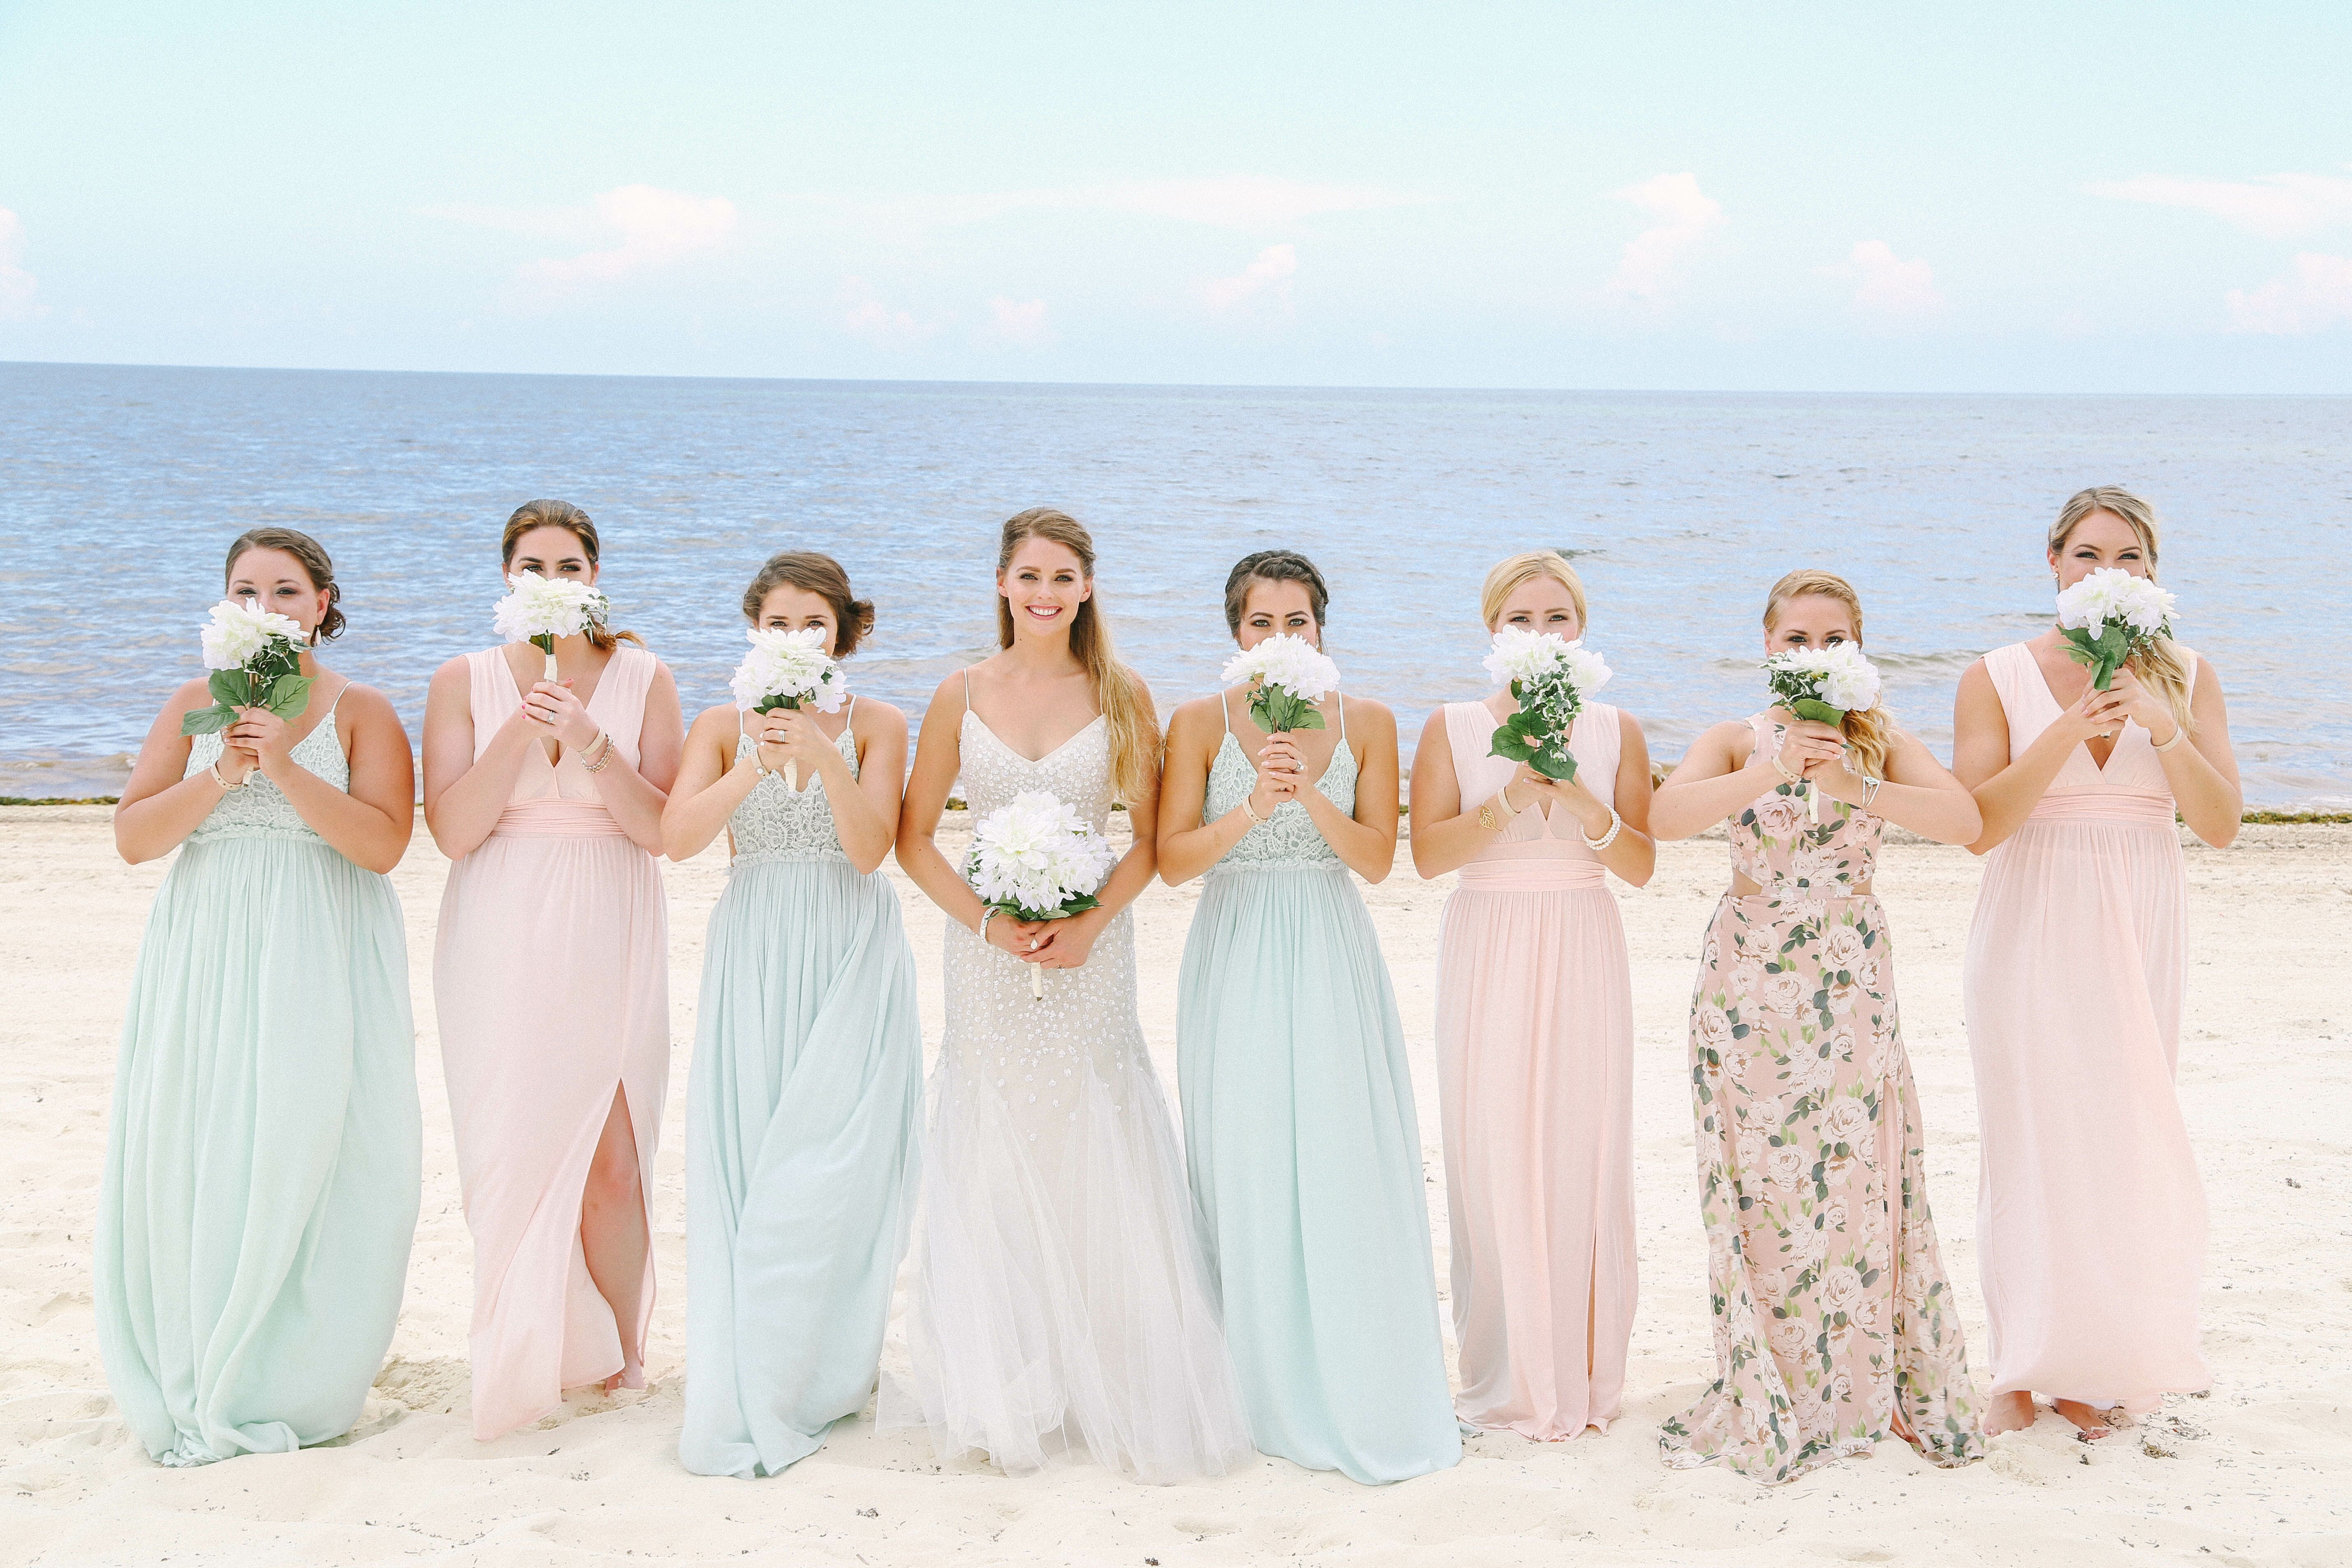 Blush and Mint Bridesmaid Dresses for Beach Wedding